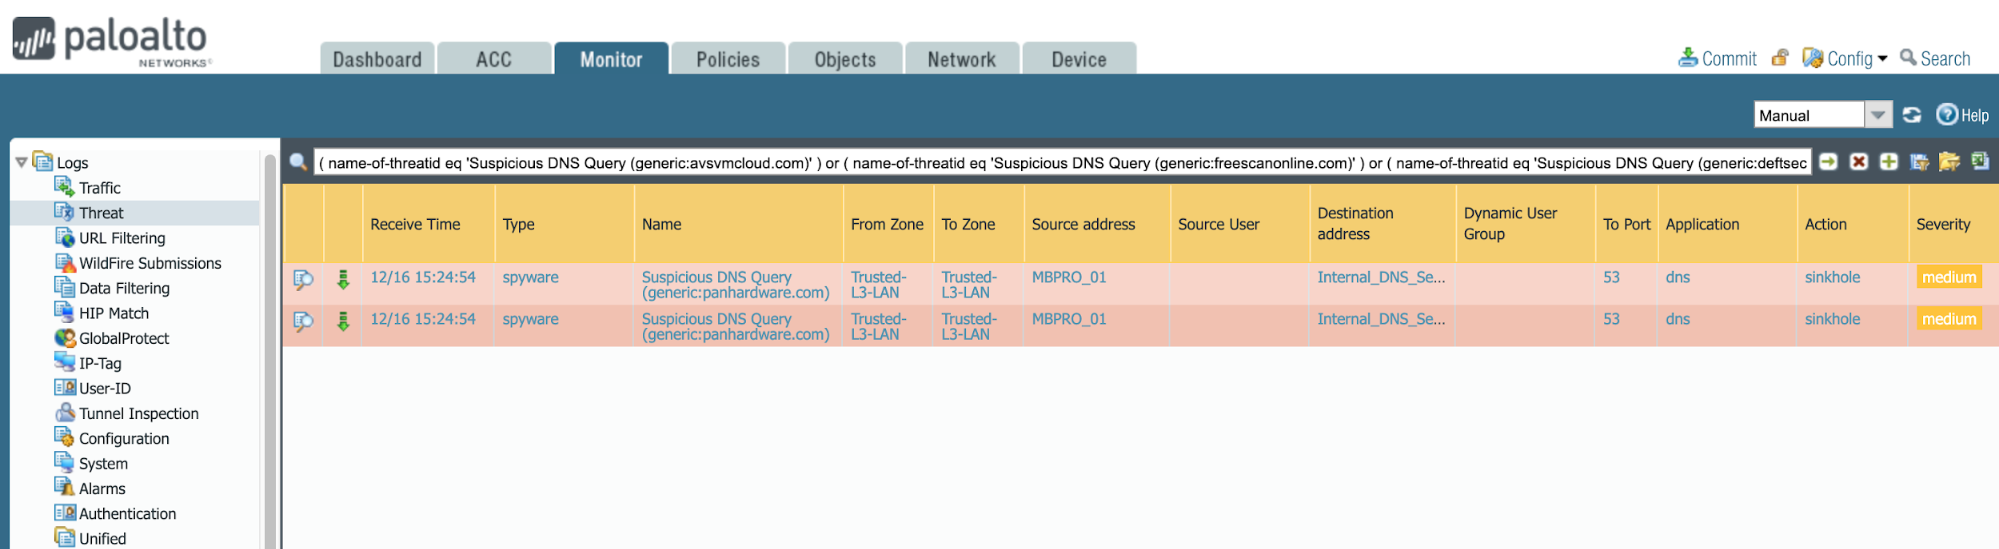 This example shows how to expose relative DNS queries signaling possible SolarStorm compromise.